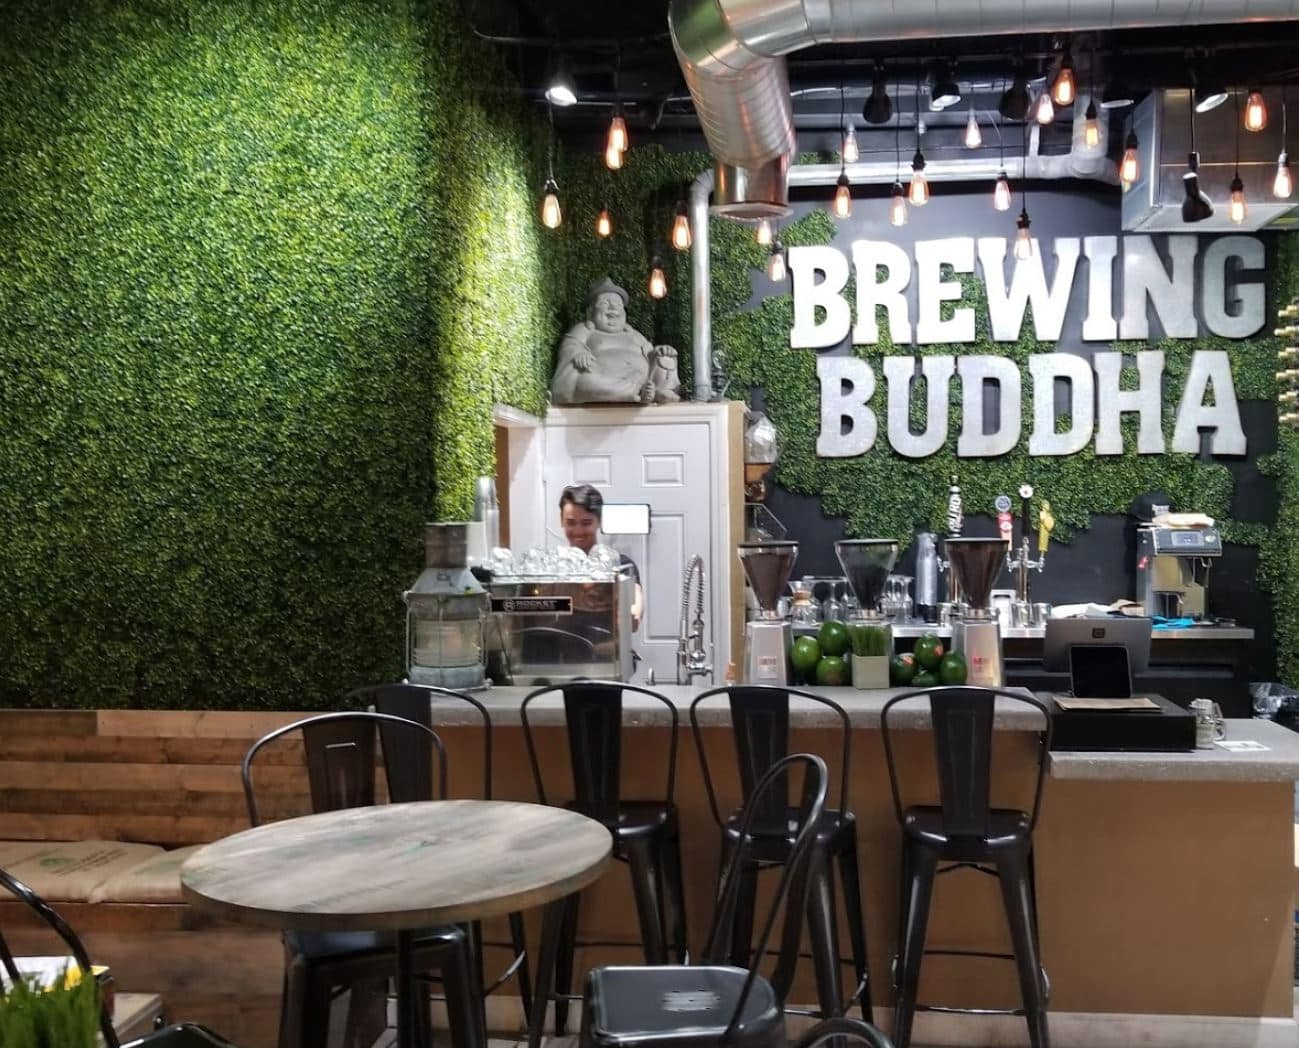 Brewing Buddha Cafe & Arthouse Cafe